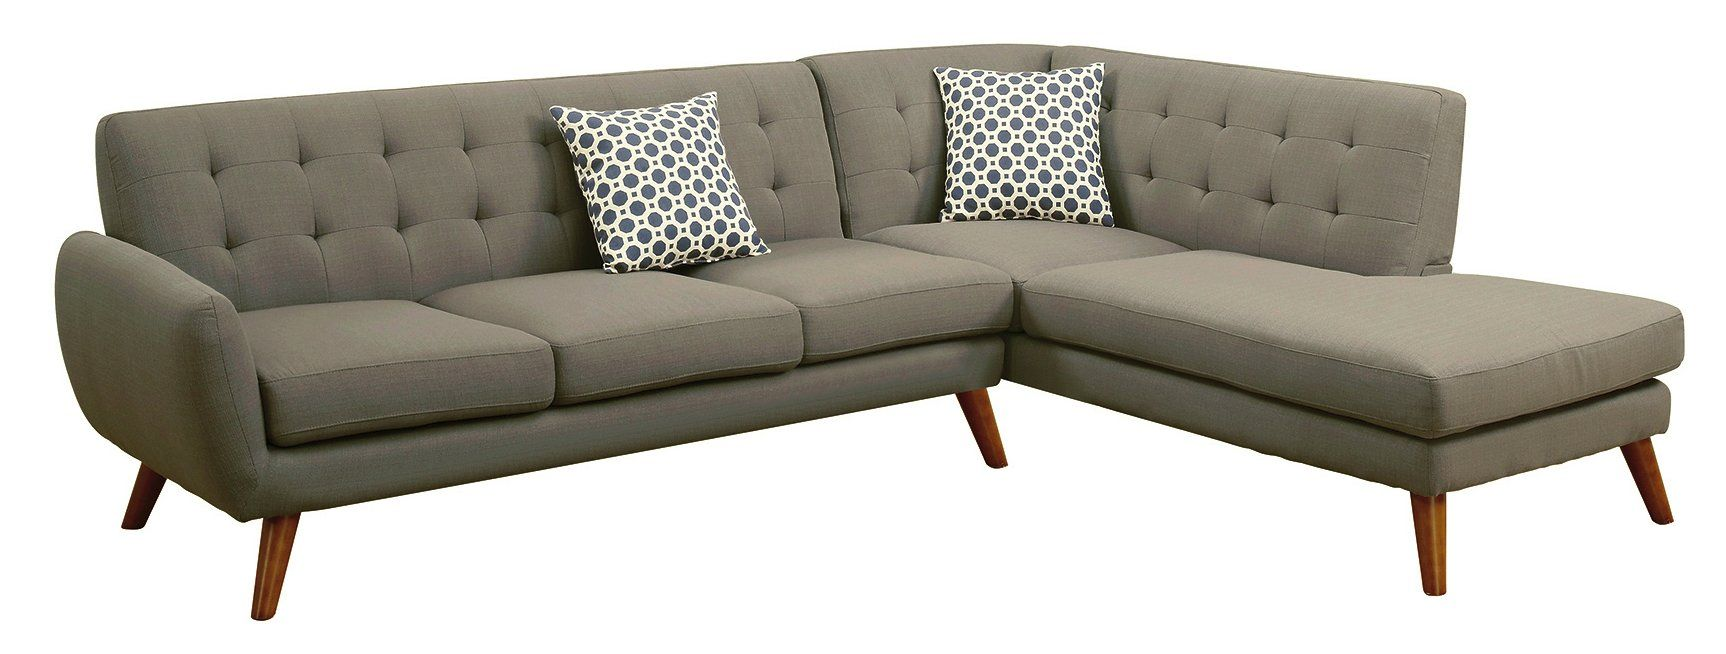 Bobkona Belinda Sectional Double Check That The 111 Width Will Fit Retro Sofa Sectional Sofa Couch Mid